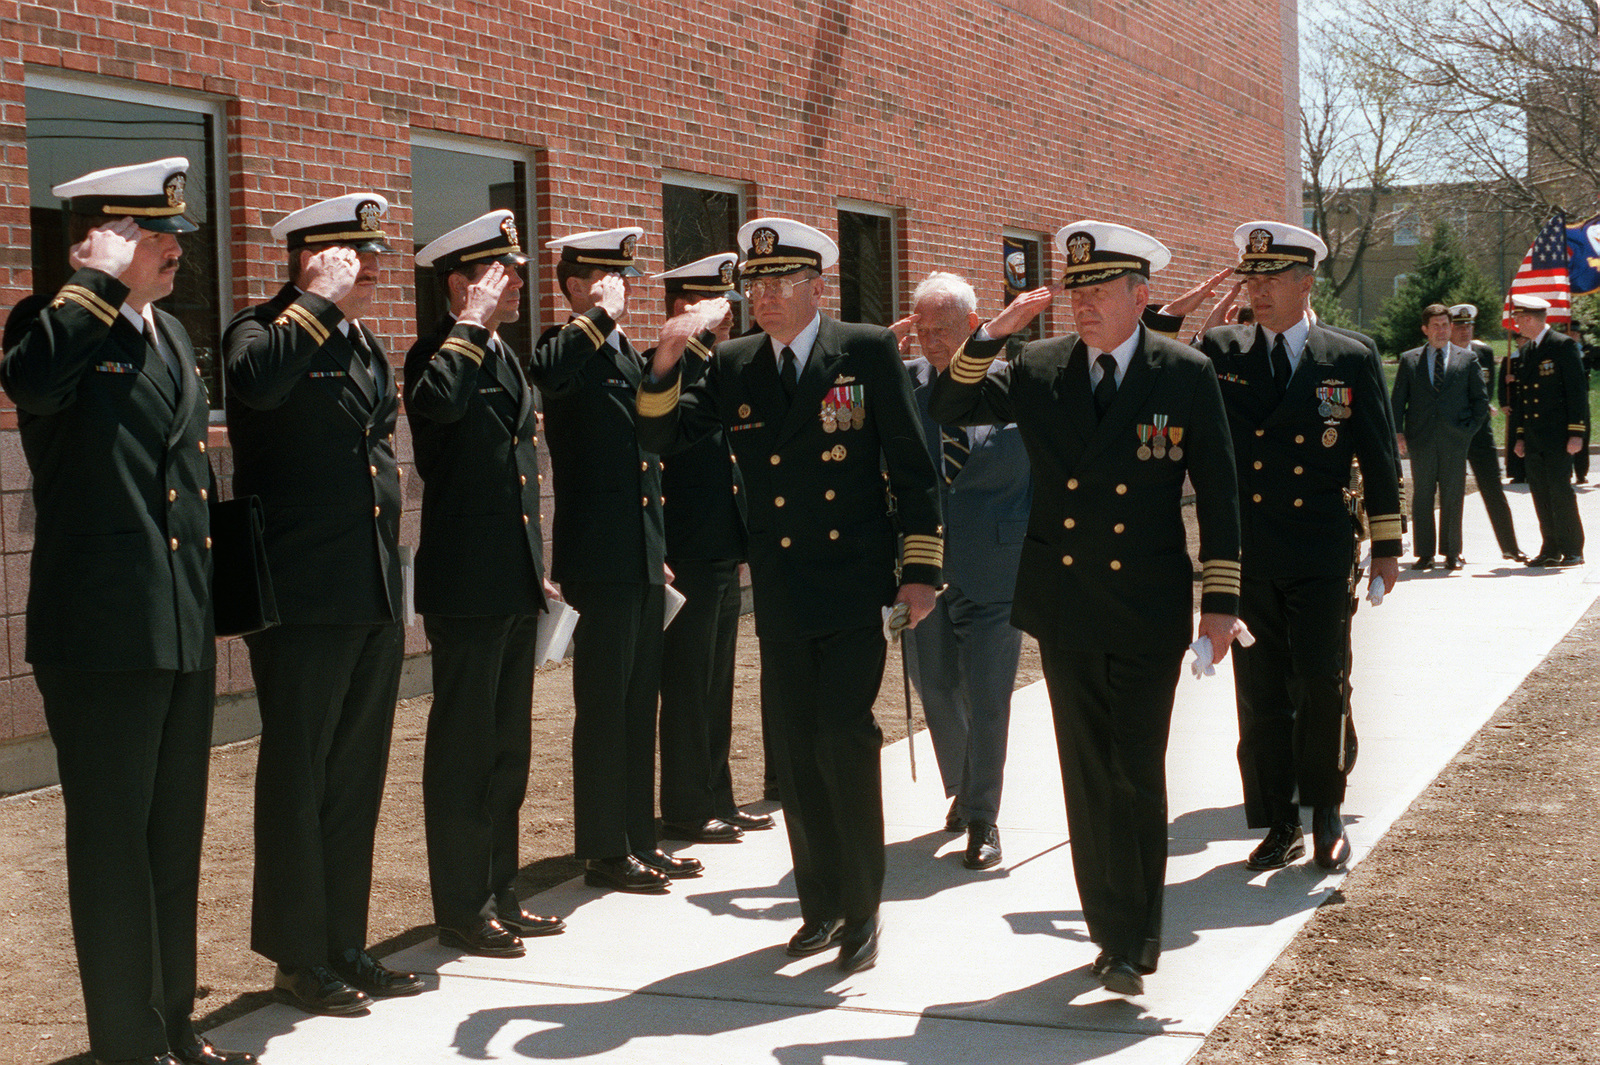 A line of lieutenants salutes a passing group of senior officers attending the dedication ceremony for Arleigh Burke Hall at the Naval War College. The hall's namesake, retired Admiral (ADM) Arleigh A. Burke, a former chief of naval operations, can be seen in the second rank of passing officers, between the two admirals